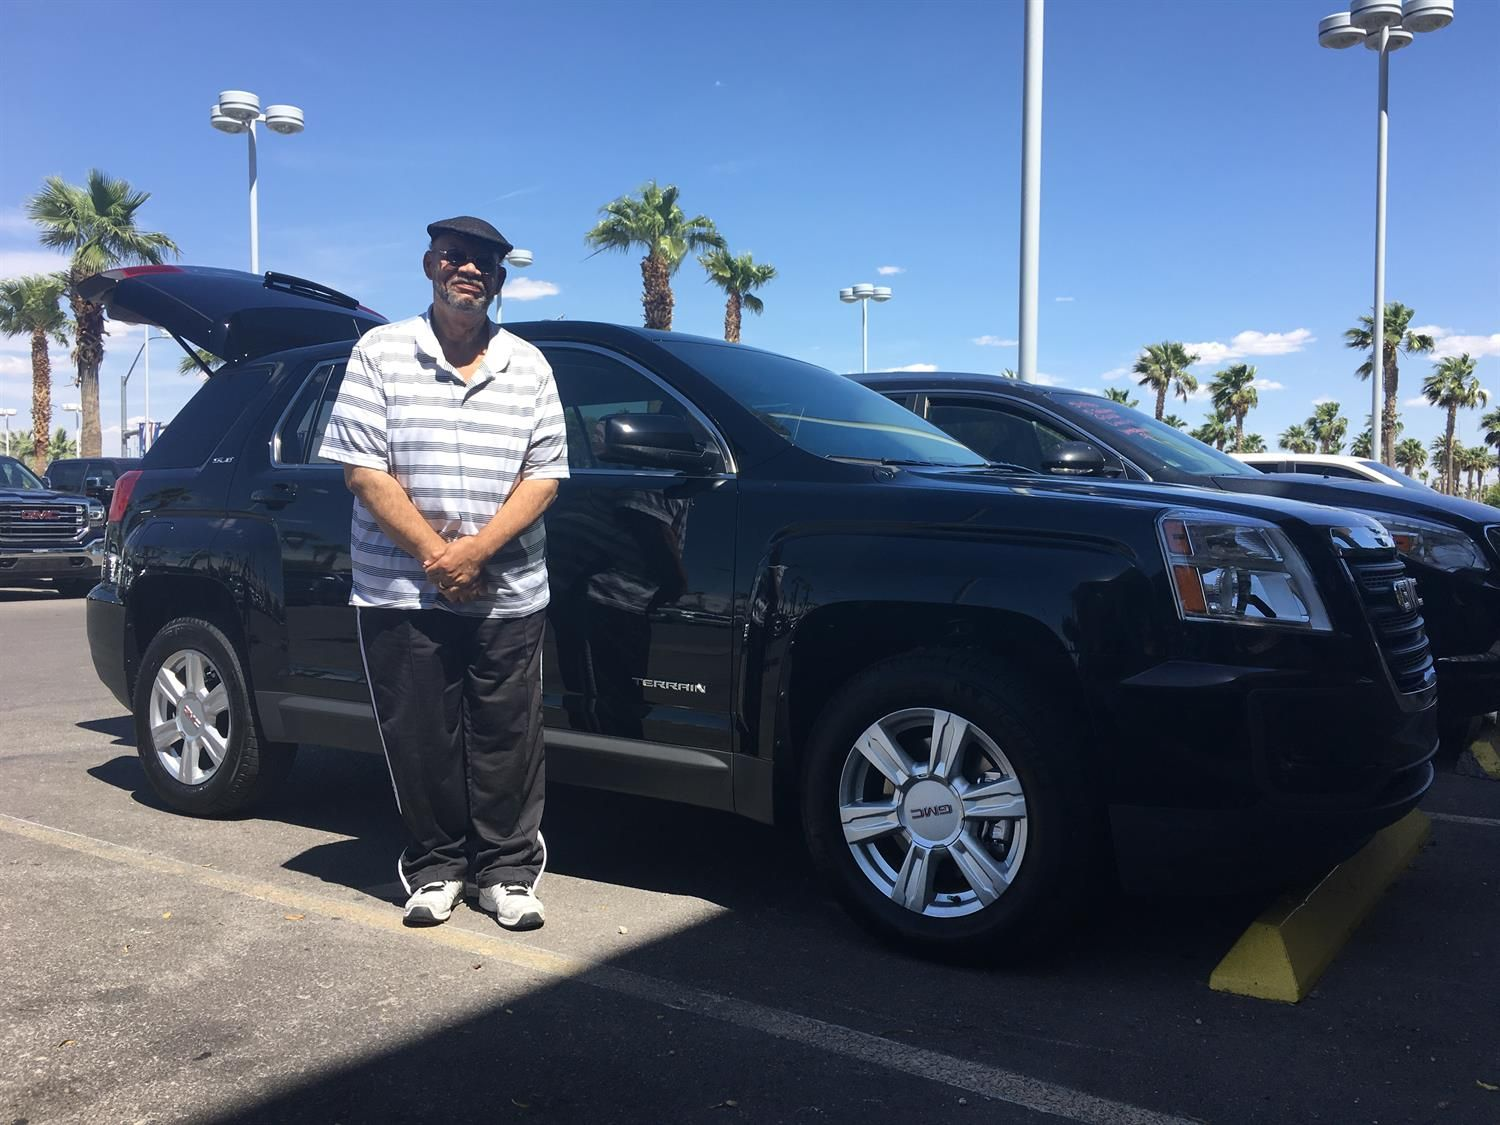 Andrew S New 2016 Gmc Terrain Congratulations And Best Wishes From Centennial Buick Gmc And Linda Vy Gmc Suv Buick Gmc Congratulations And Best Wishes